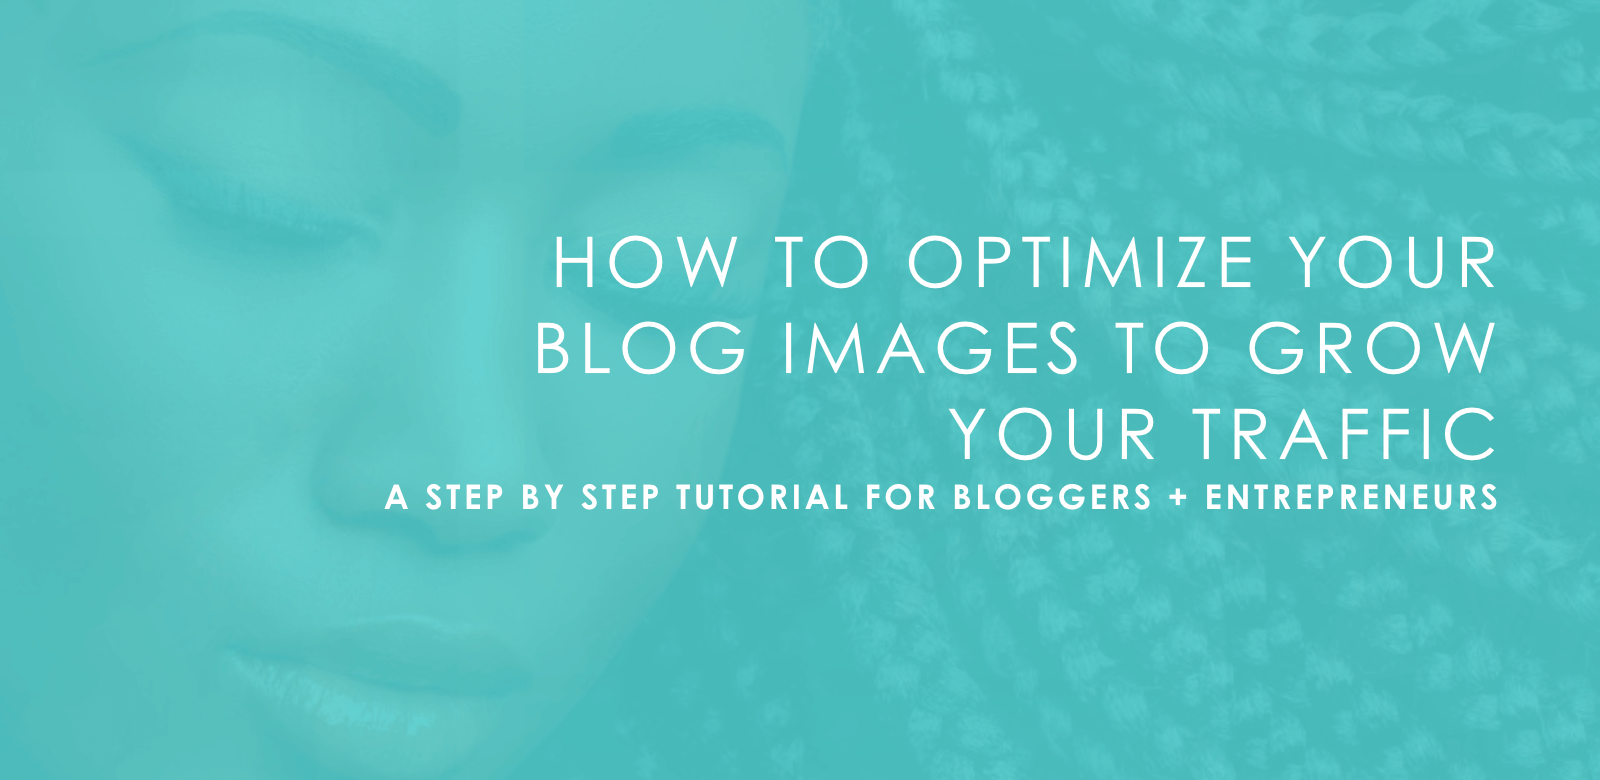 HOW TO OPTIMIZE YOUR BLOG IMAGES TO GROW YOUR TRAFFIC